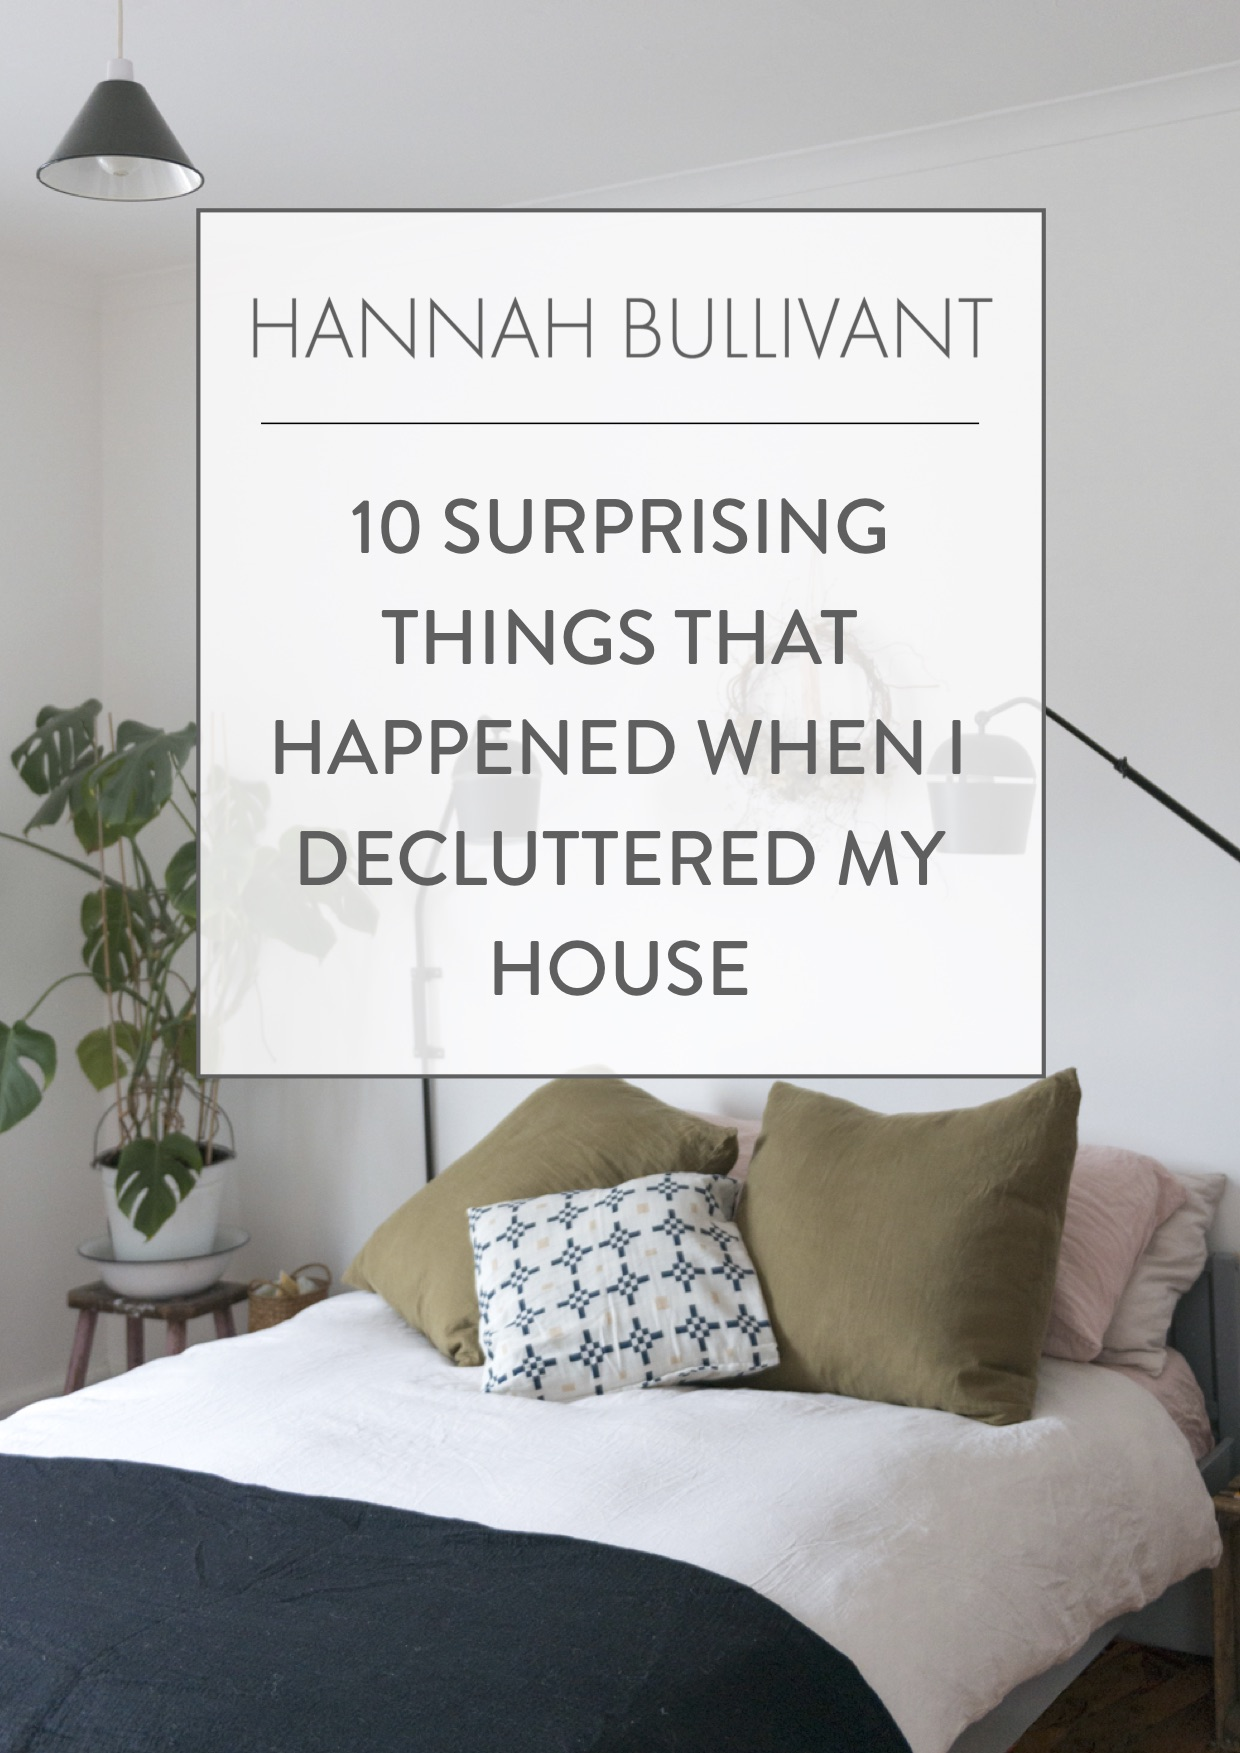 10 surprising things that happened when I decluttered my house